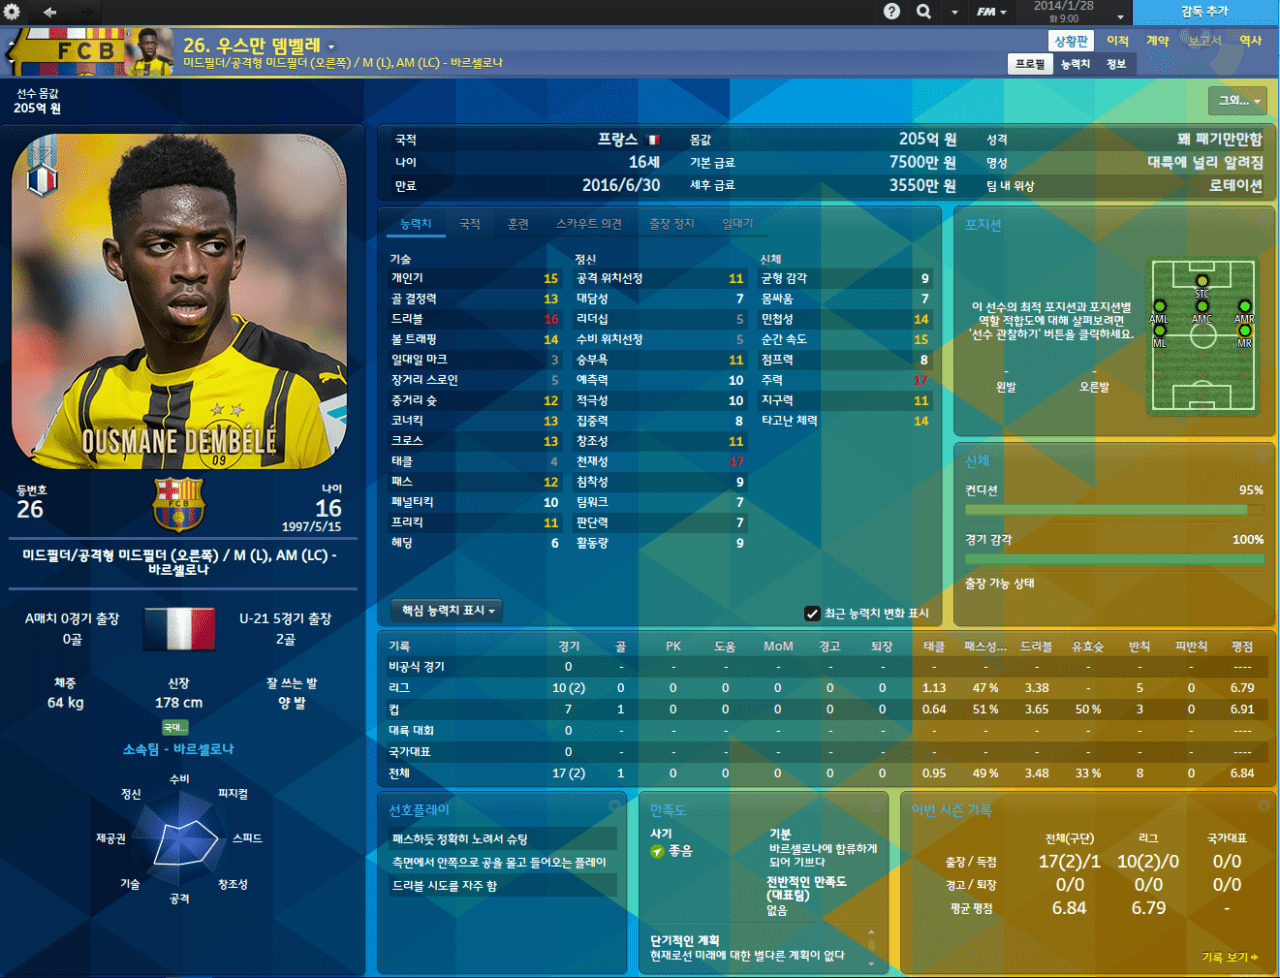 Dembele.PNG [14.3.1] Football Manager 2014 17-18 EU Transfer FMDONG ROSTER BETA v0.61